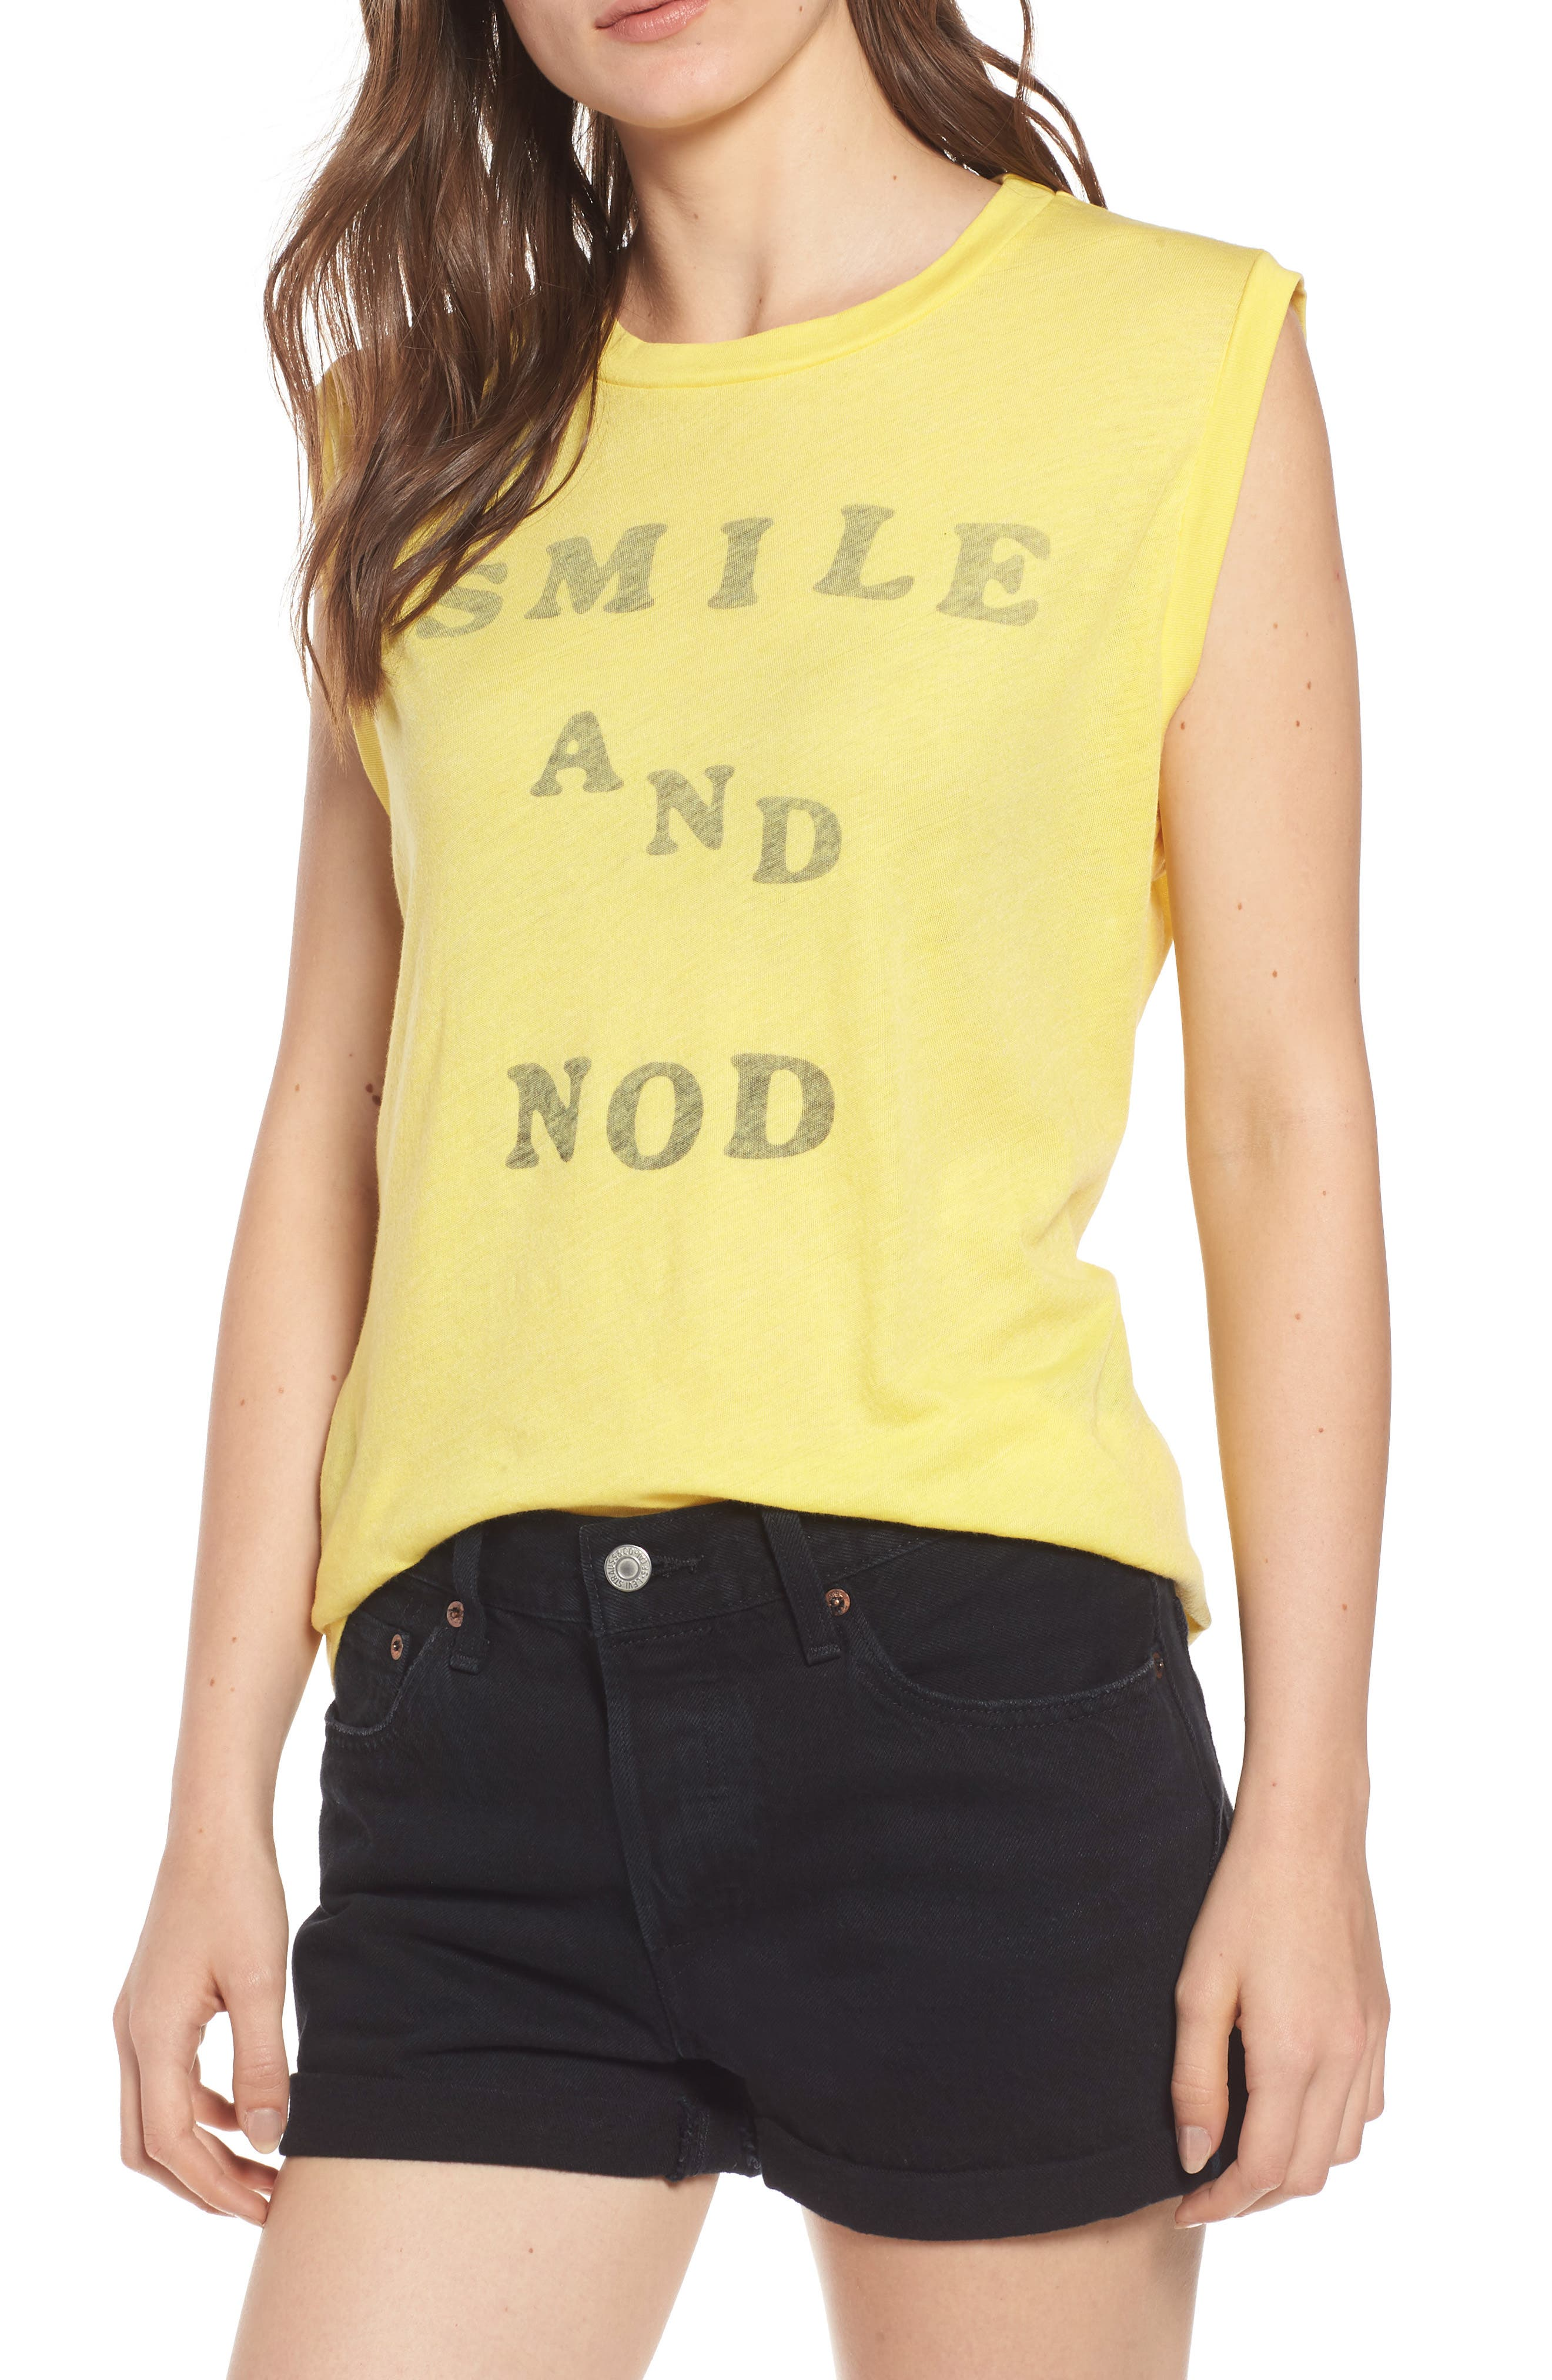 SMILE AND NOD VINTAGE MUSCLE TEE